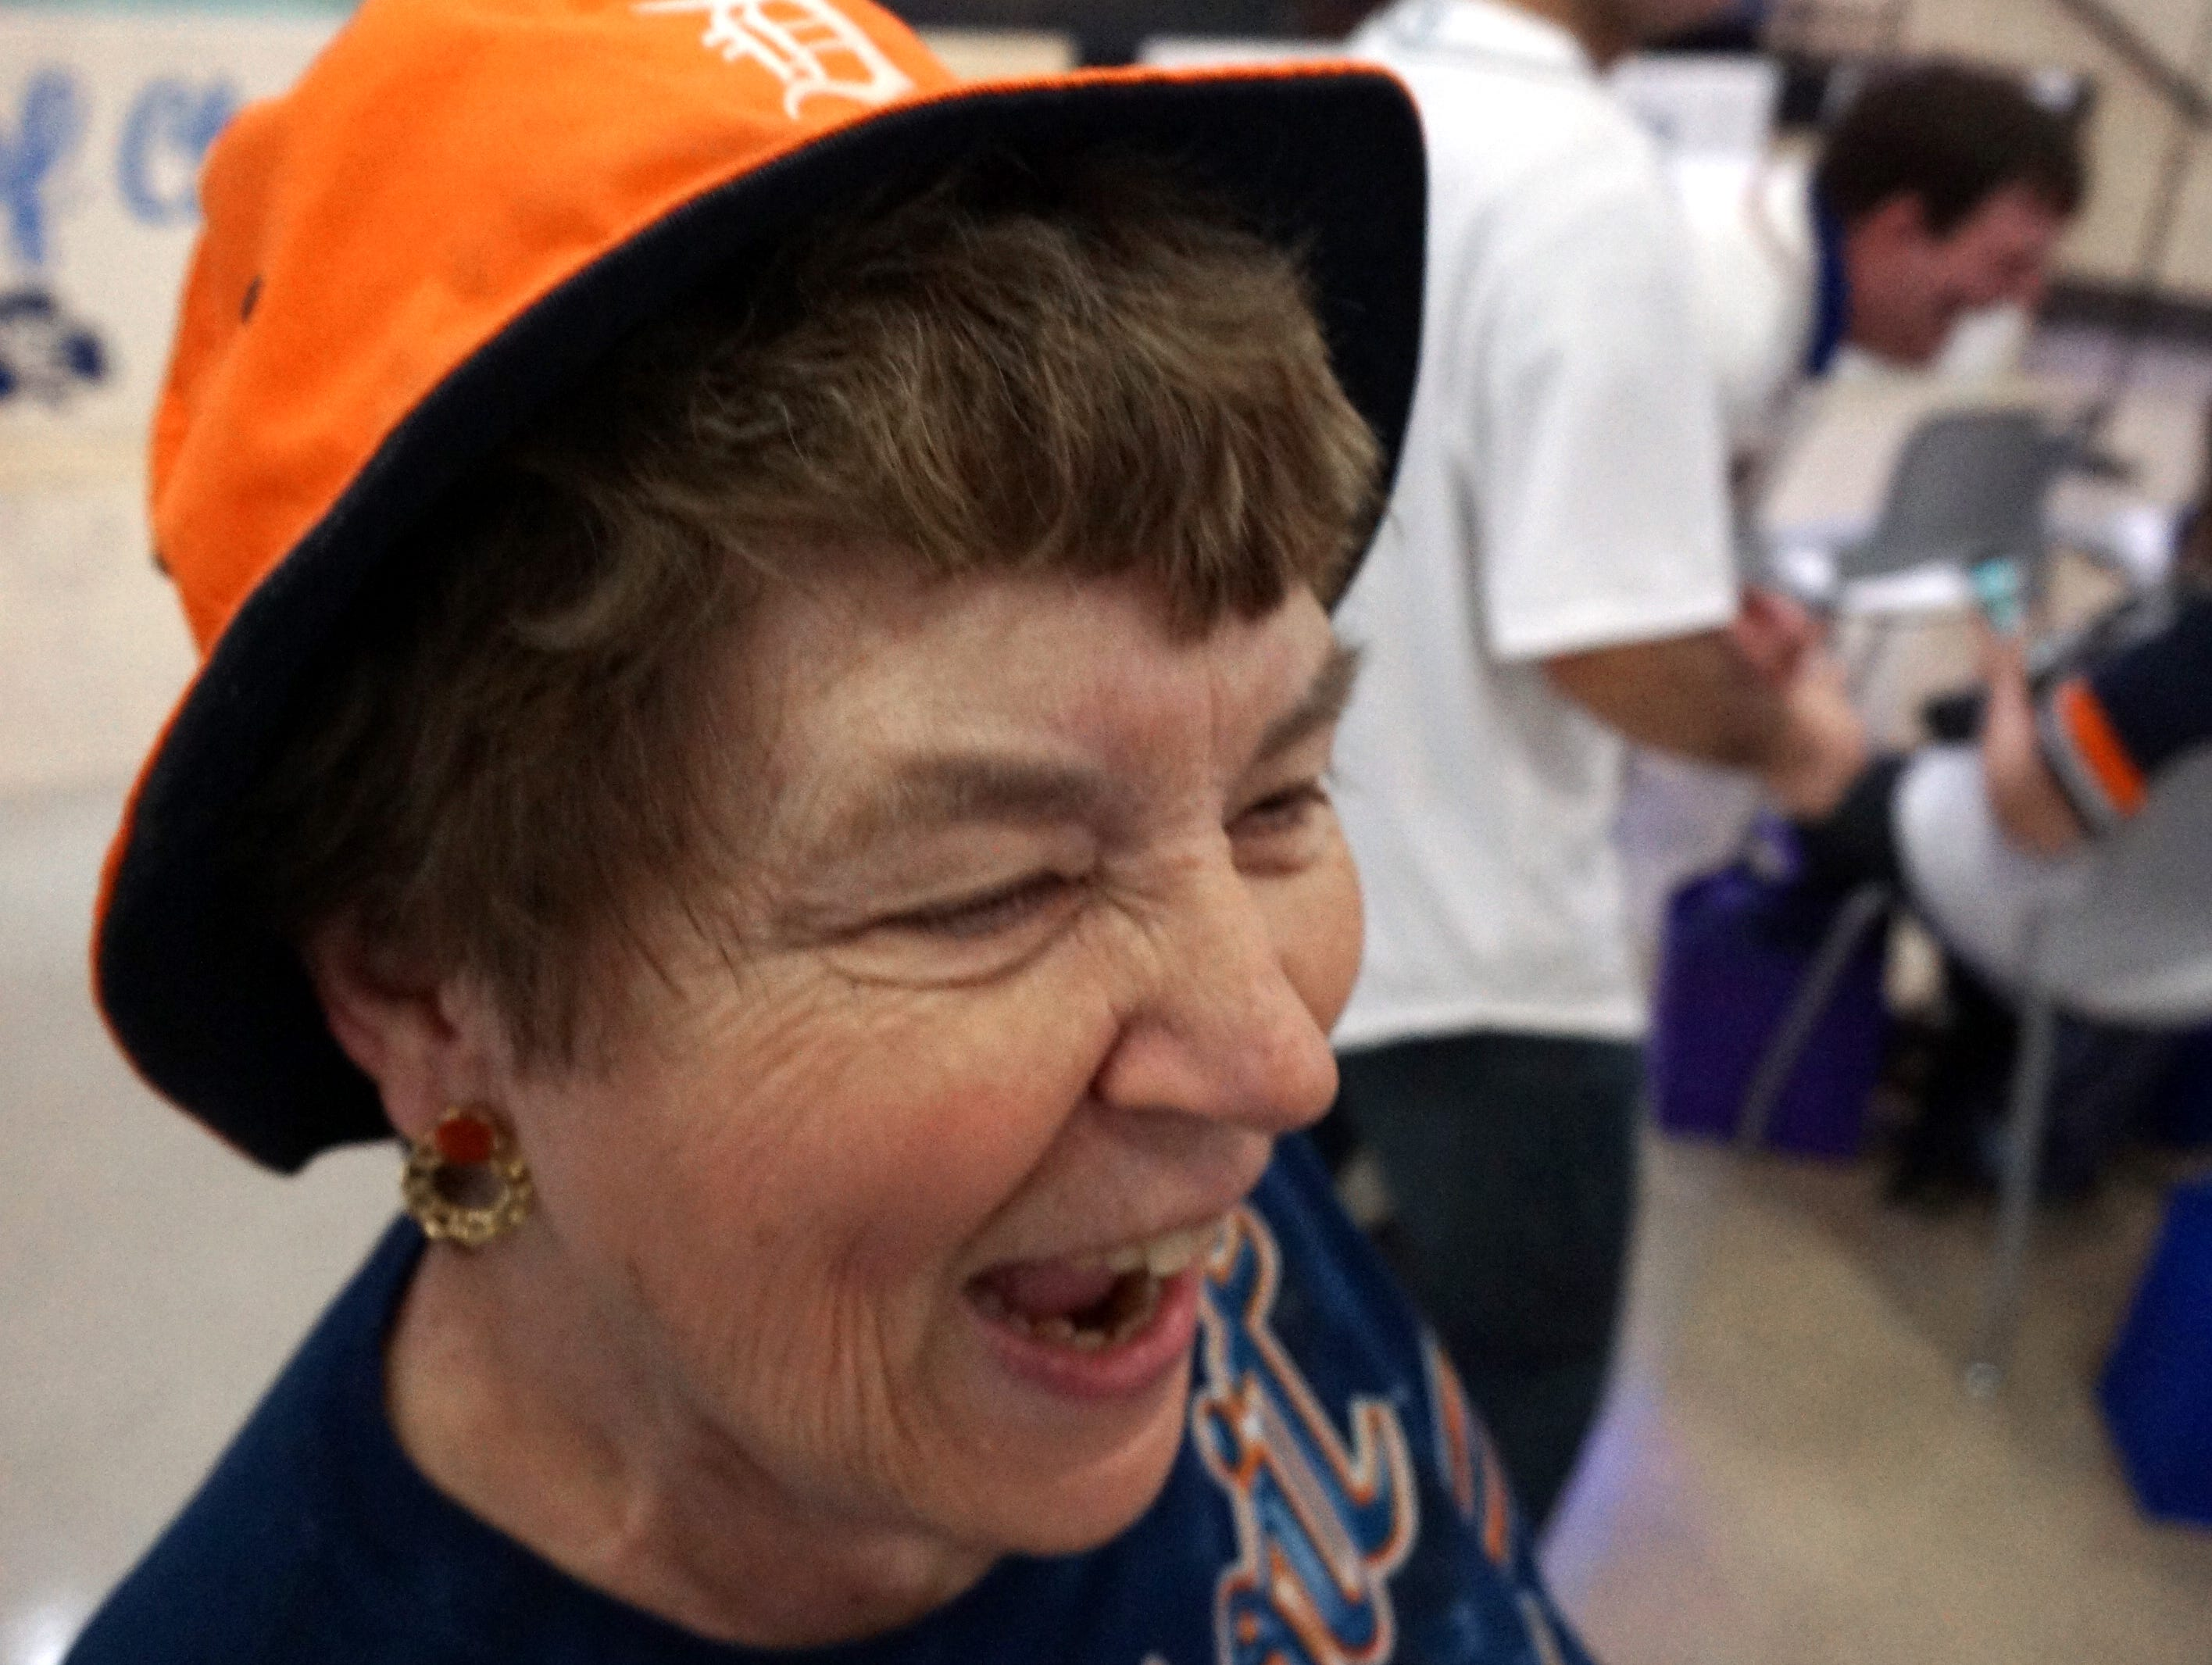 Barb Lewis sports a Tigers hat and shirt as the fan awaits her team's visit to the Novi Civic Center.